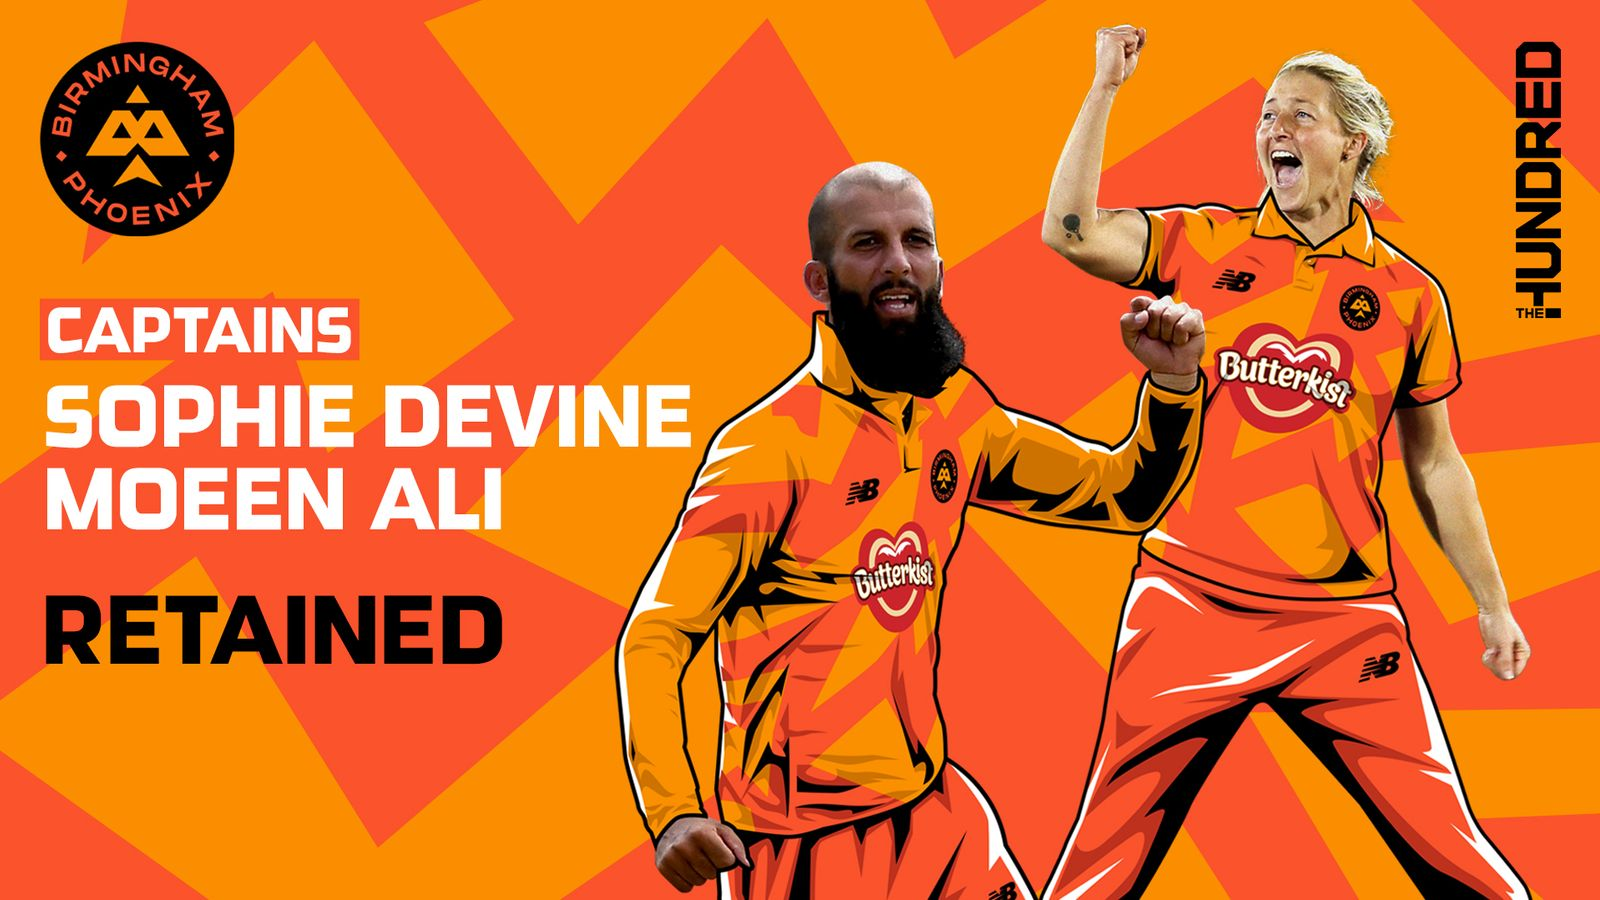 Moeen Ali and Sophie Devine retained as Birmingham Phoenix captains for The Hundred